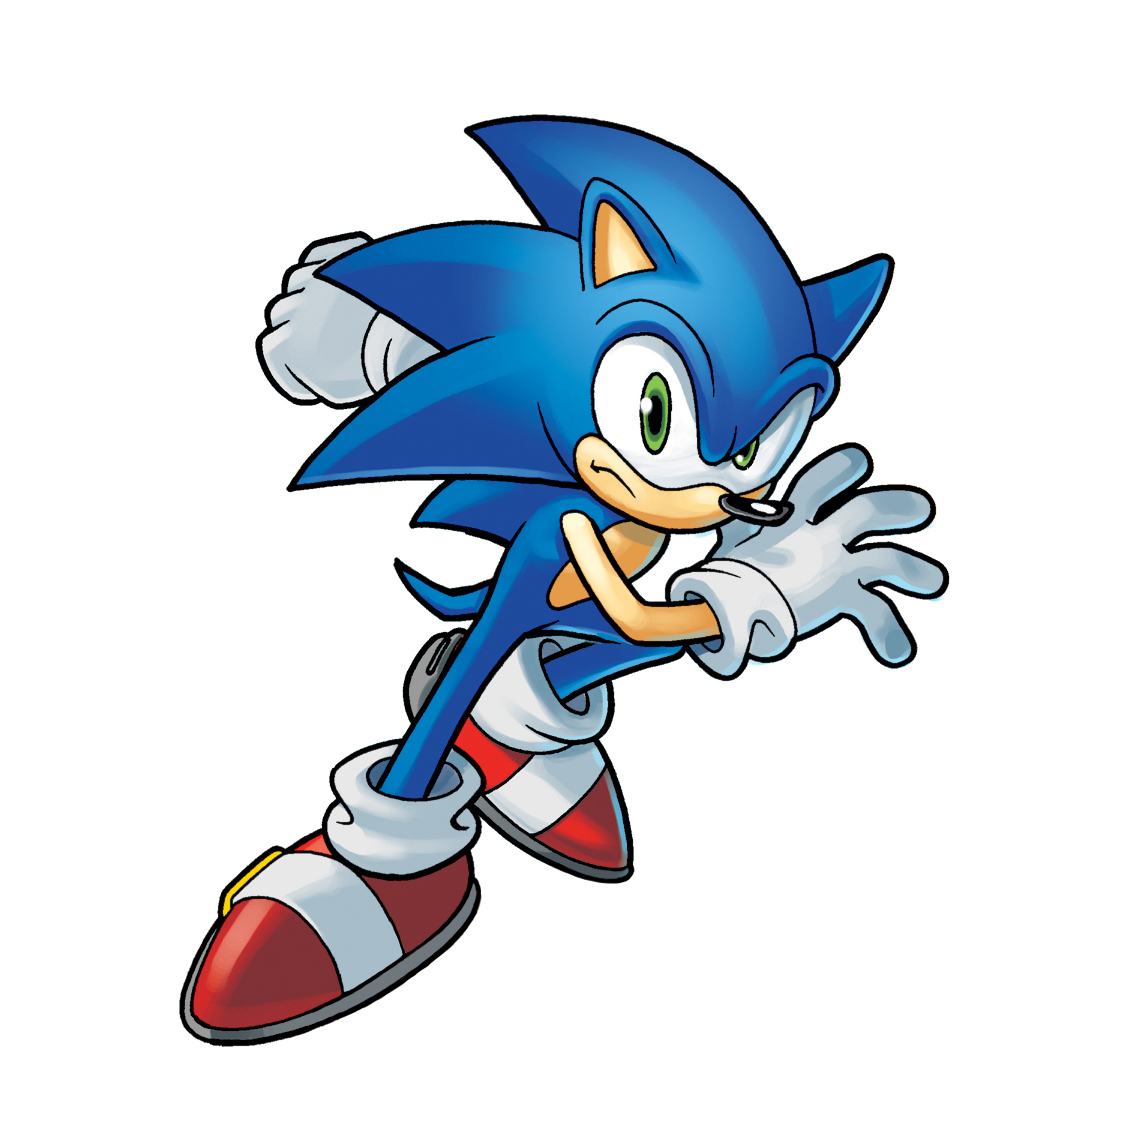 sonic the hedgehog mobius encyclopaedia fandom powered by wikia. Black Bedroom Furniture Sets. Home Design Ideas